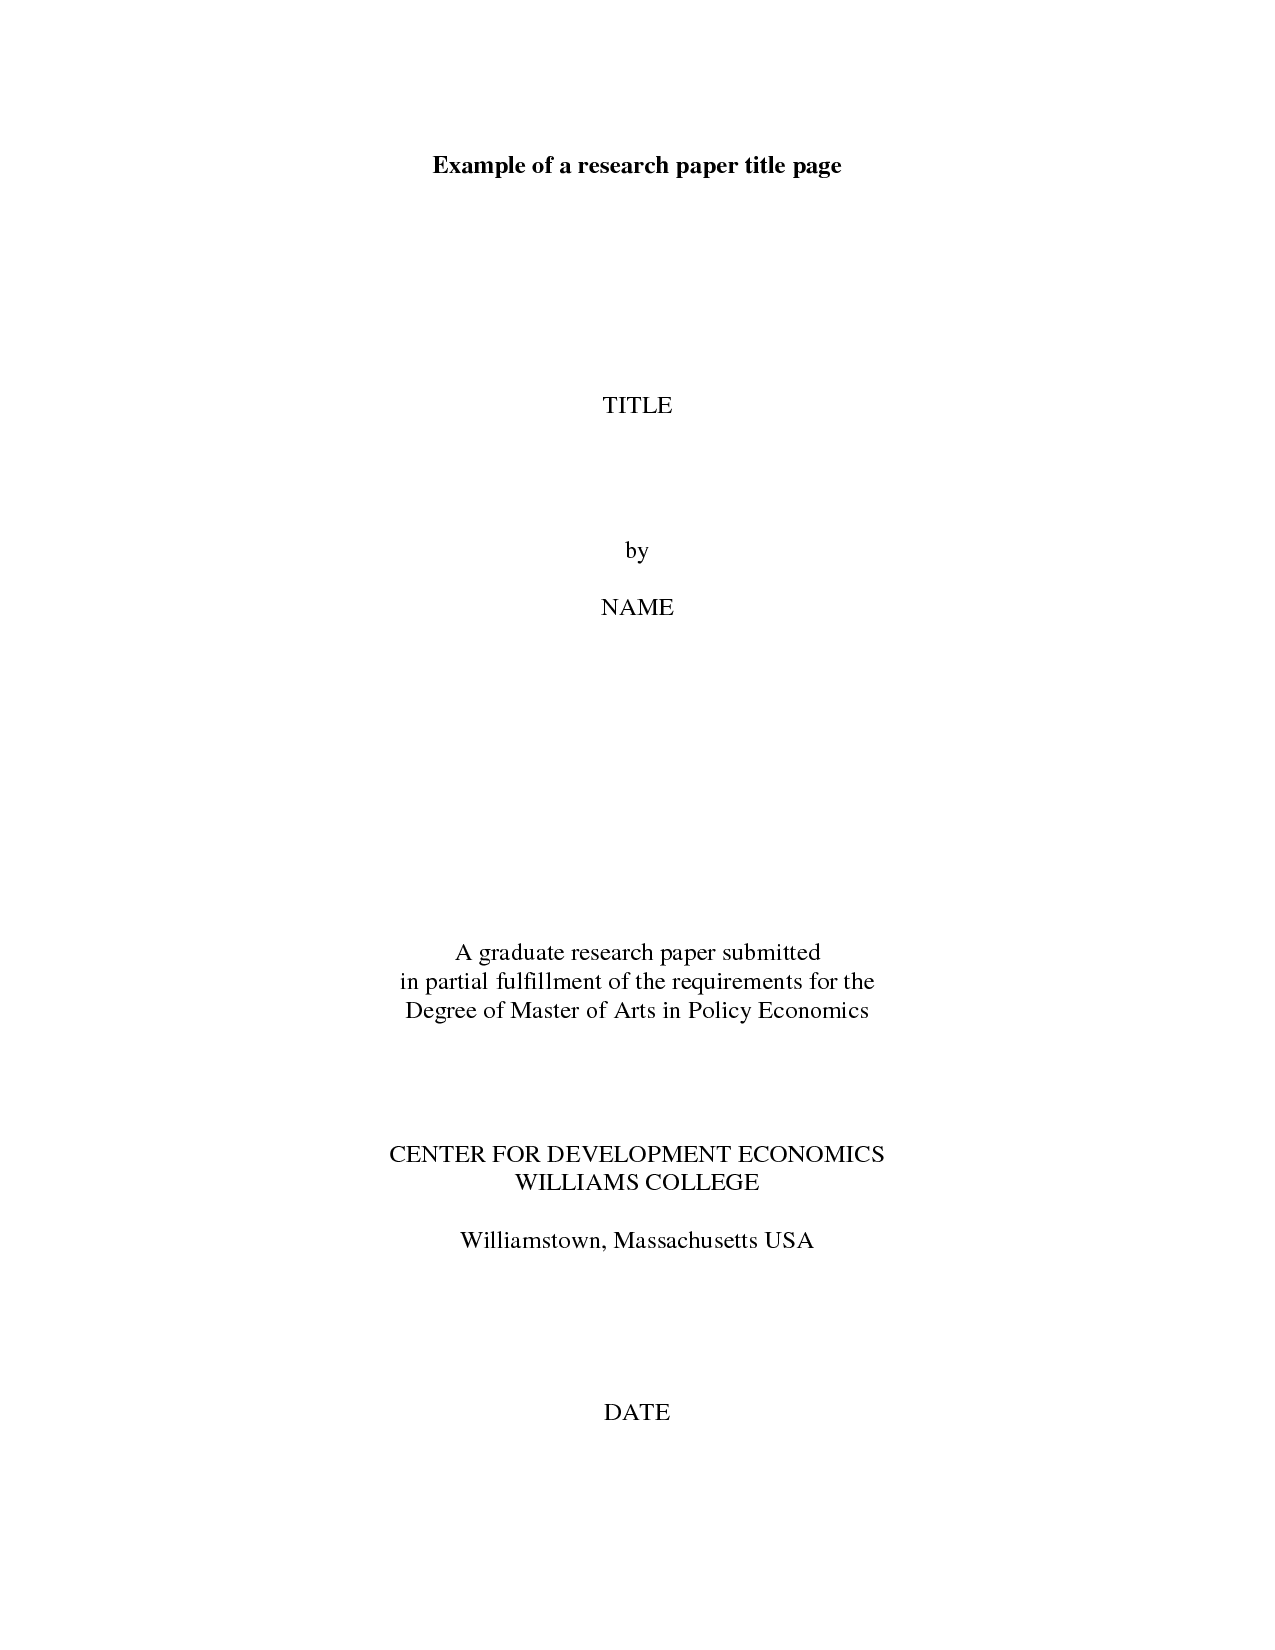 003 Cover Page Research Paper Template Sample 319781 Breathtaking Mla Full